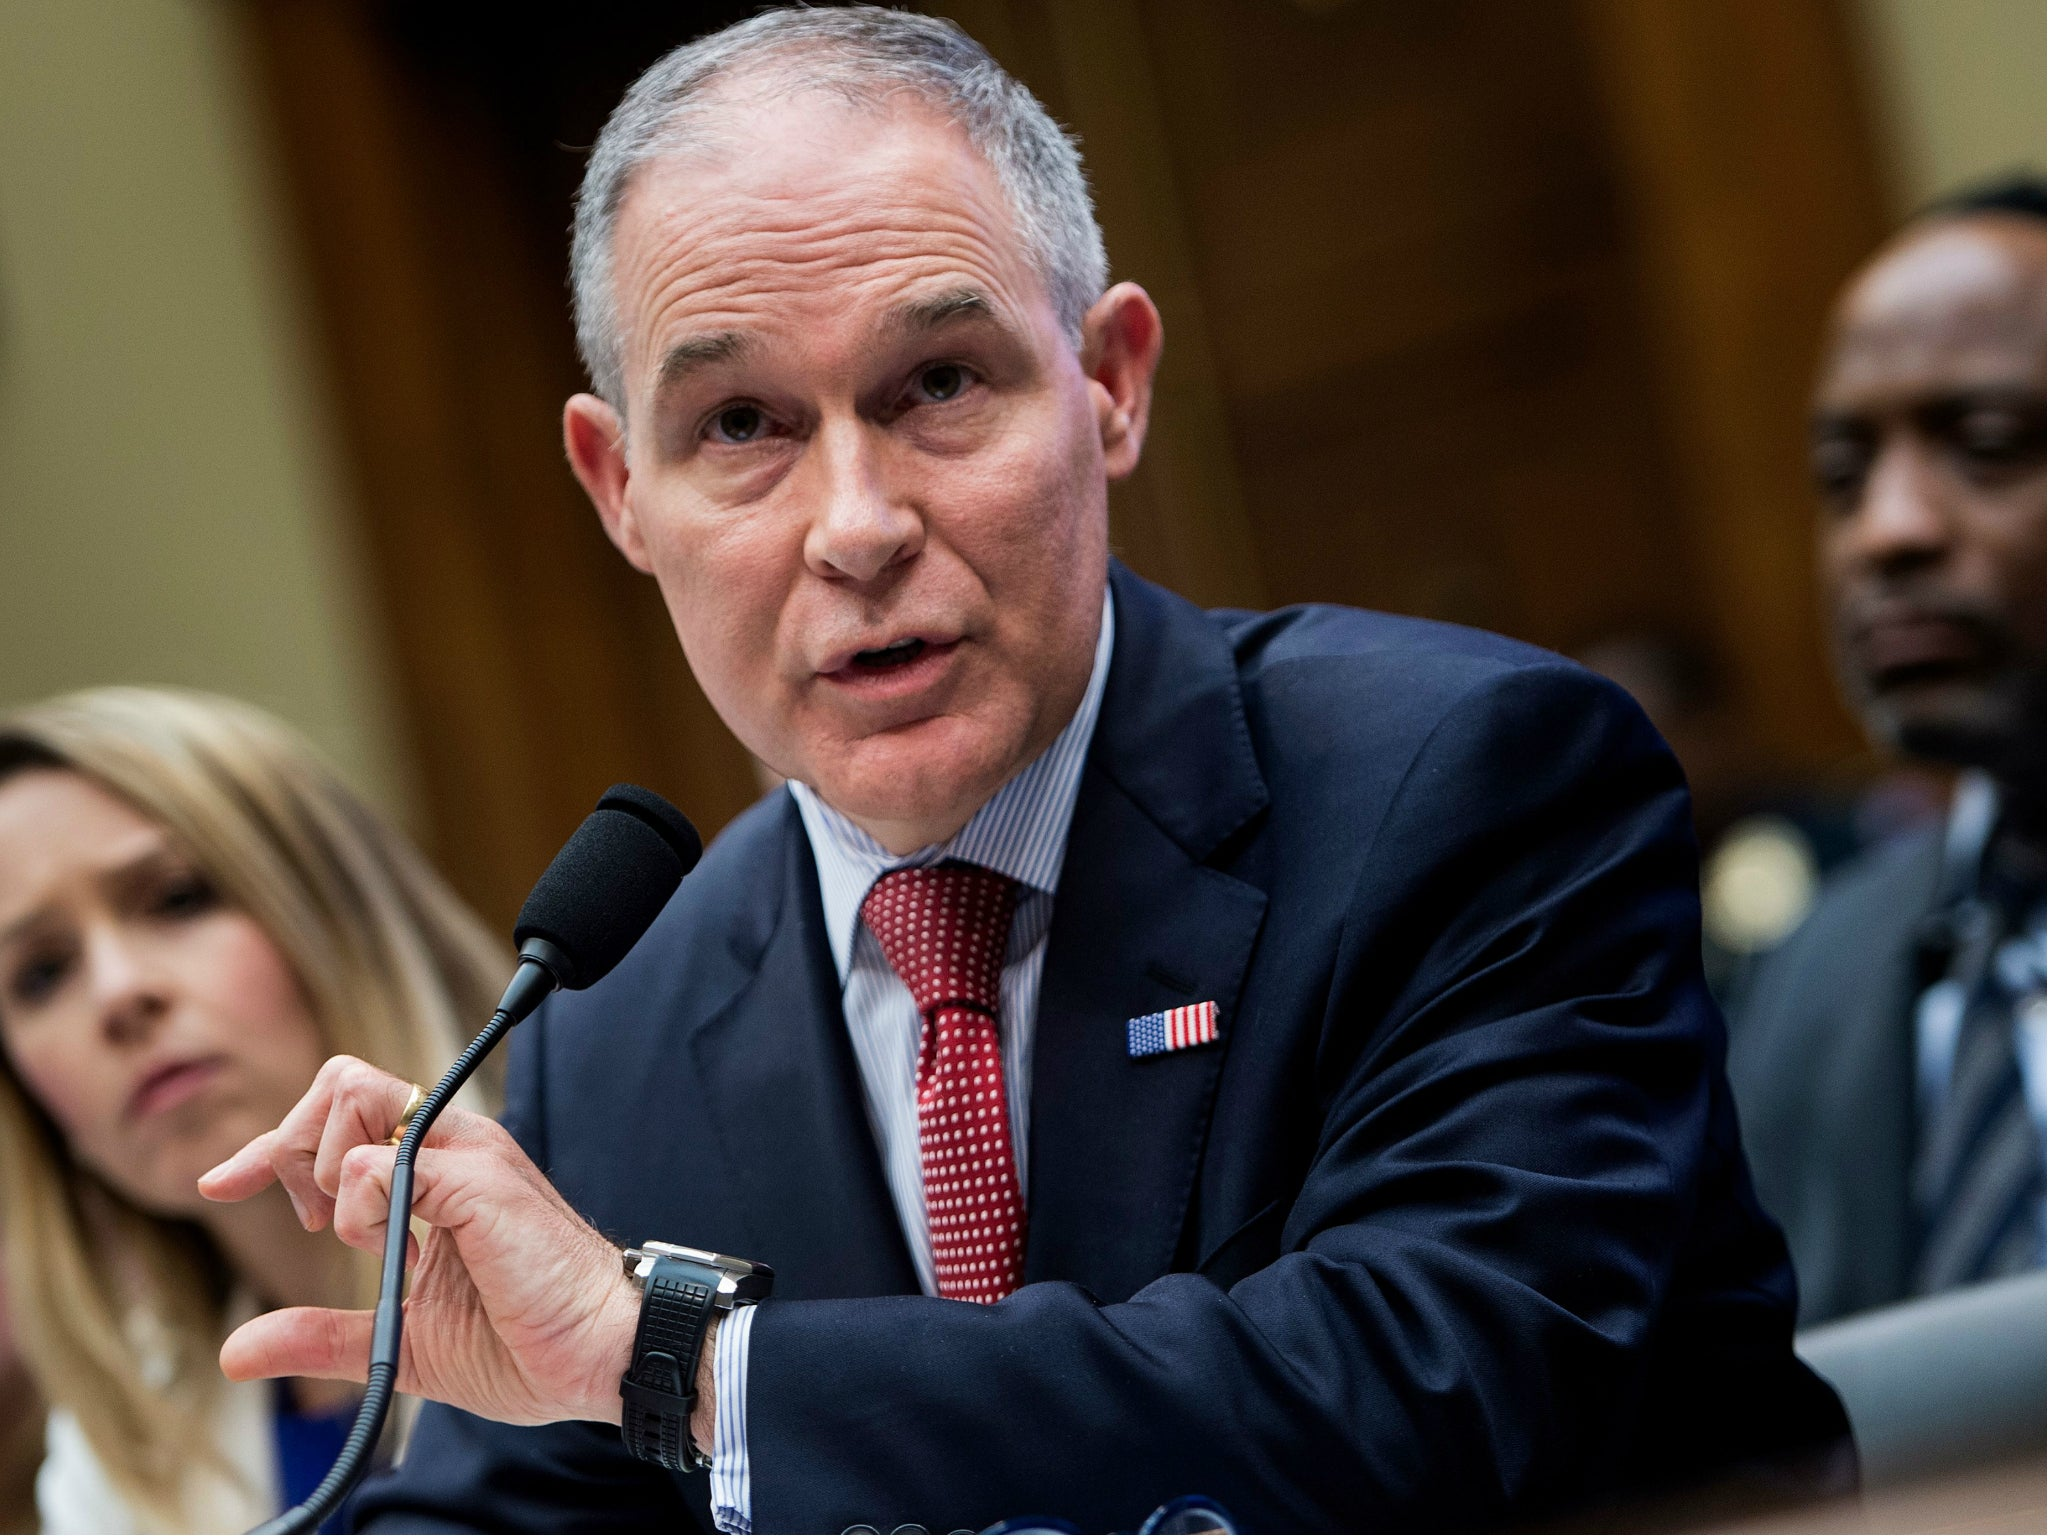 Scott Pruitt 'invited oil executives to work' at Environmental Protection Agency